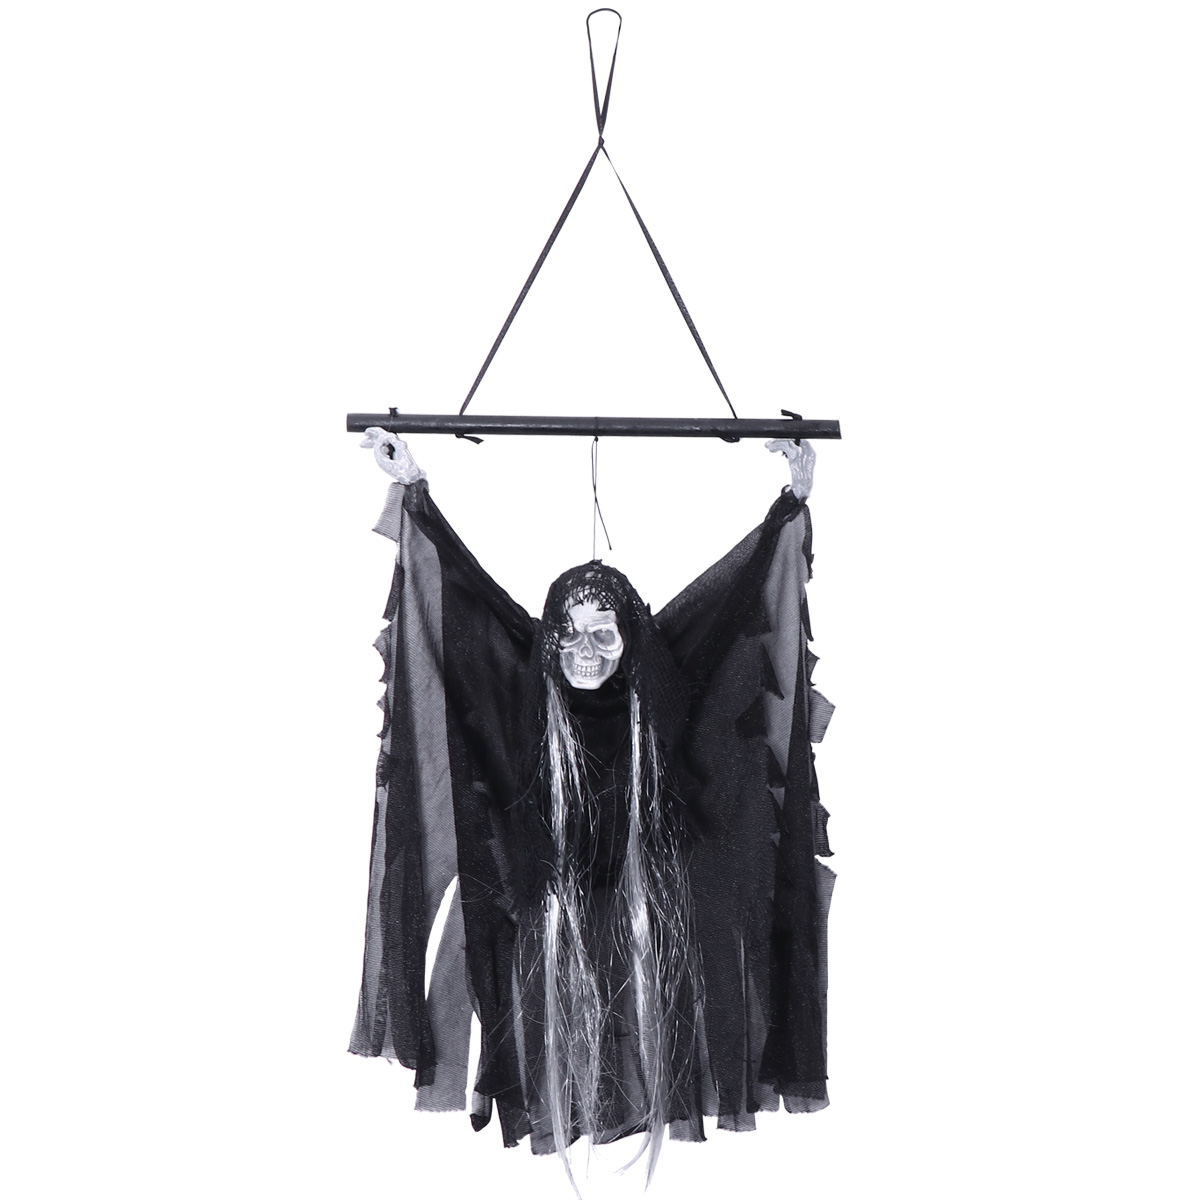 Sound Control Creepy Hanging Scary Ghost Skull Skeleton